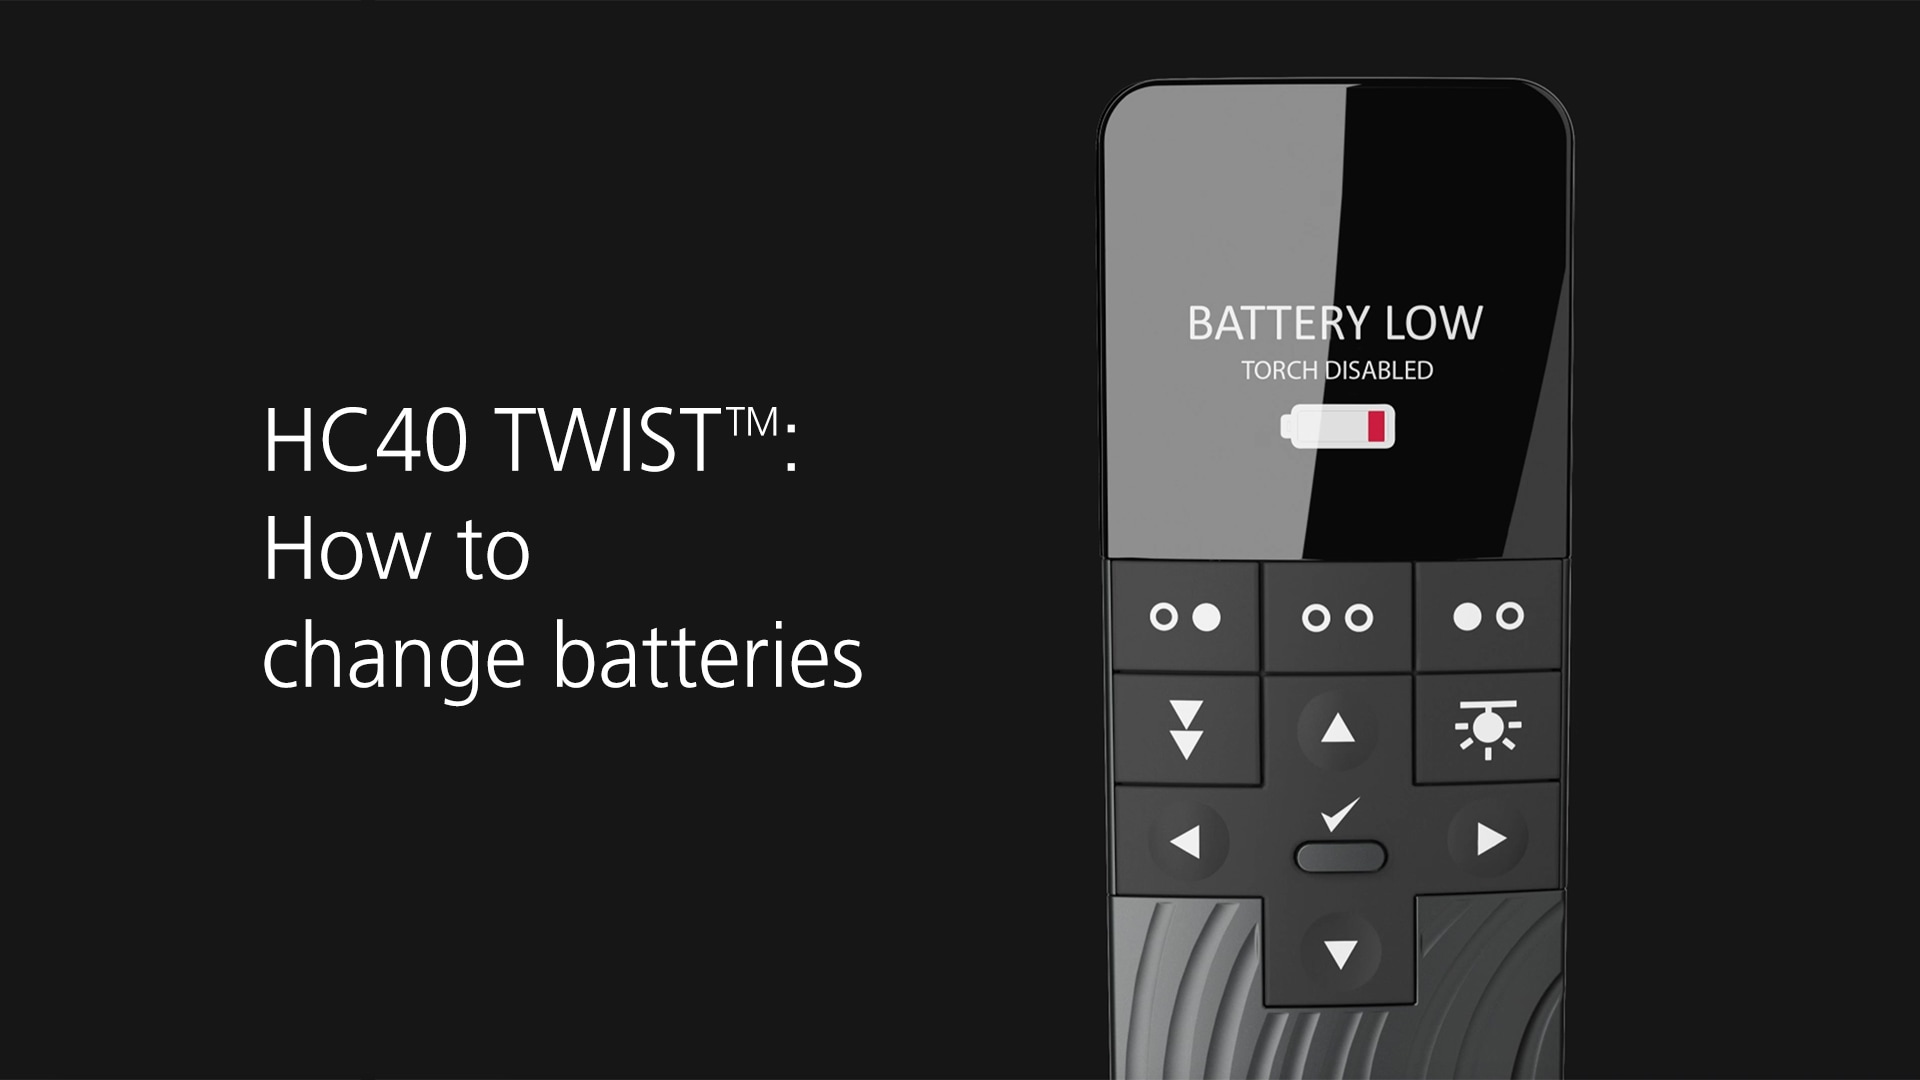 HC40 TWIST™ How to change batteries